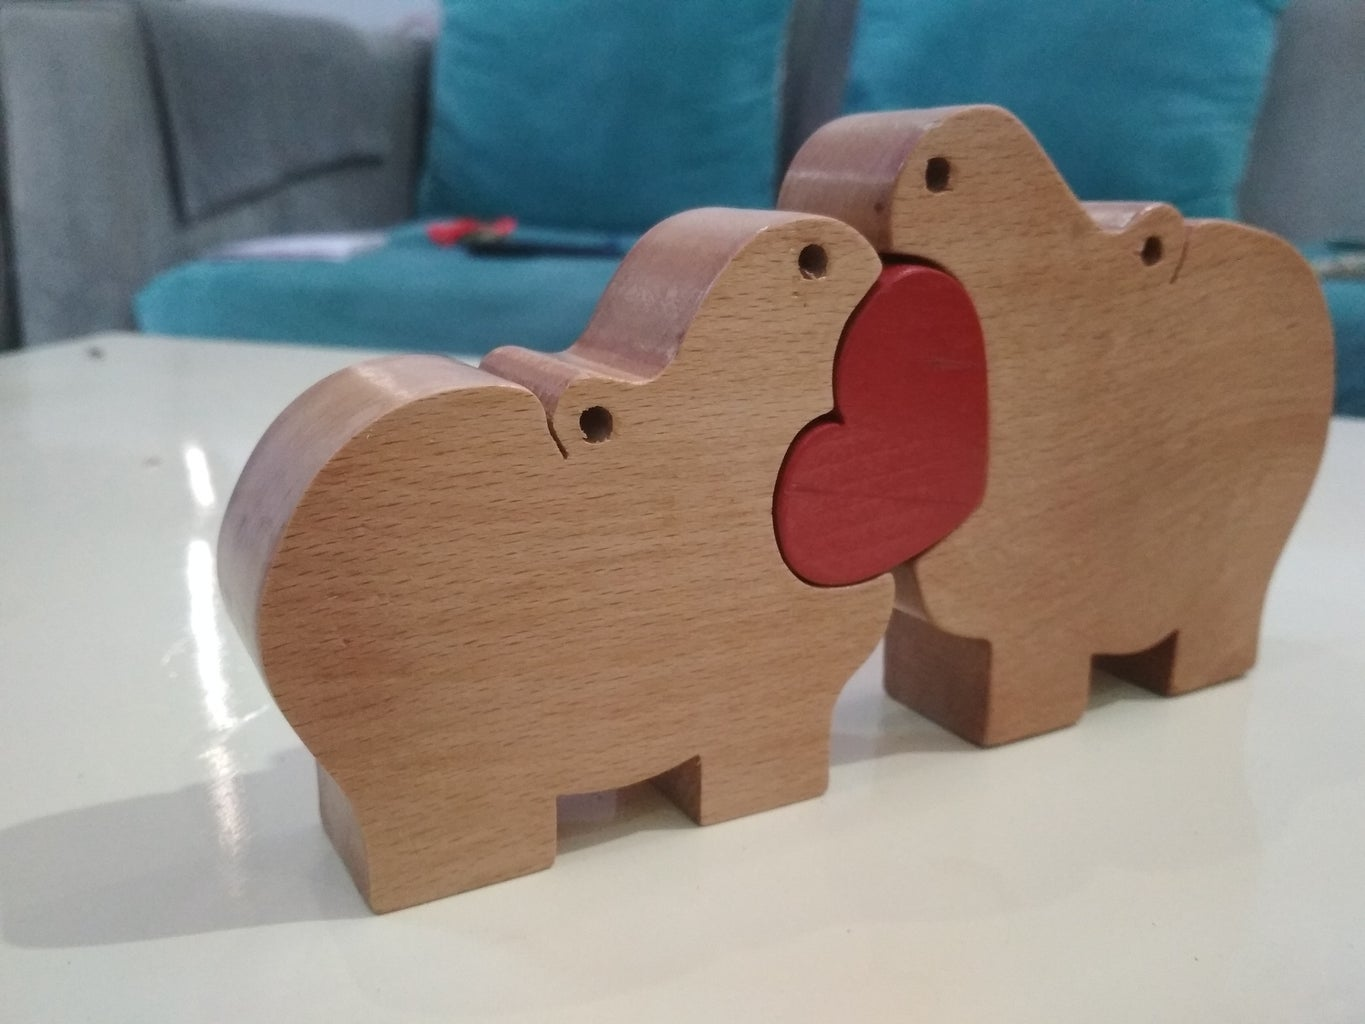 This Is My Hippo Wooden Puzzle After Finishing for My Kids